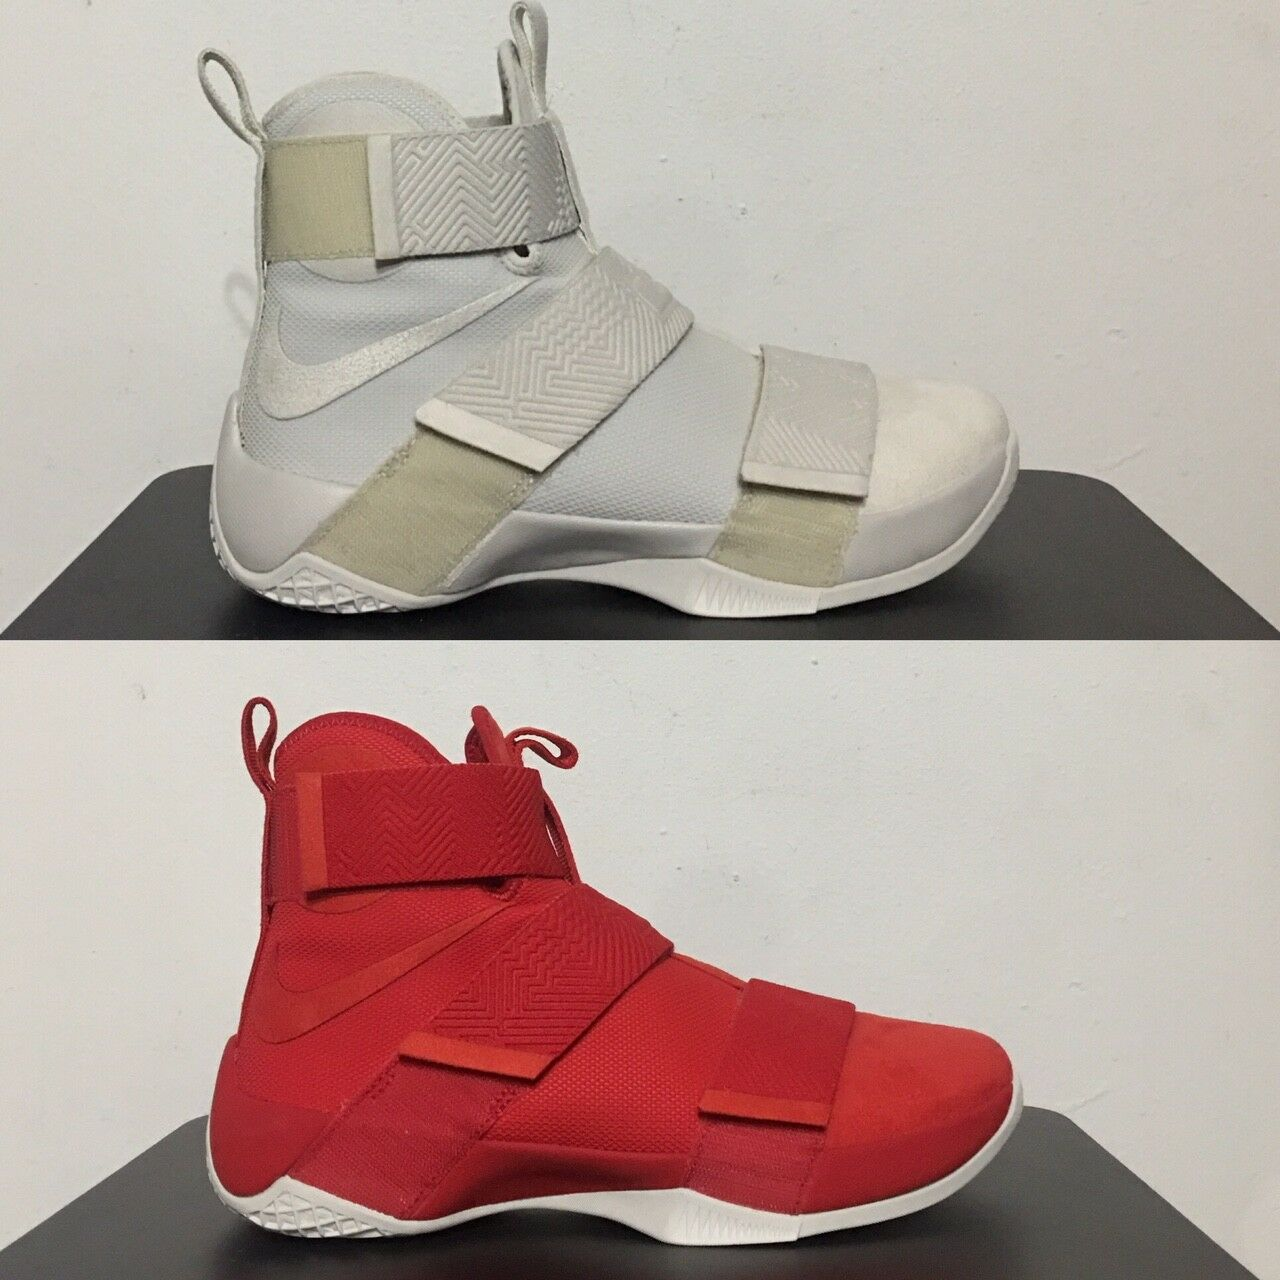 best-selling model of the brand Nike Lebron Soldier 10 SFG LUX Basketball Shoes Light Bone Red 911306